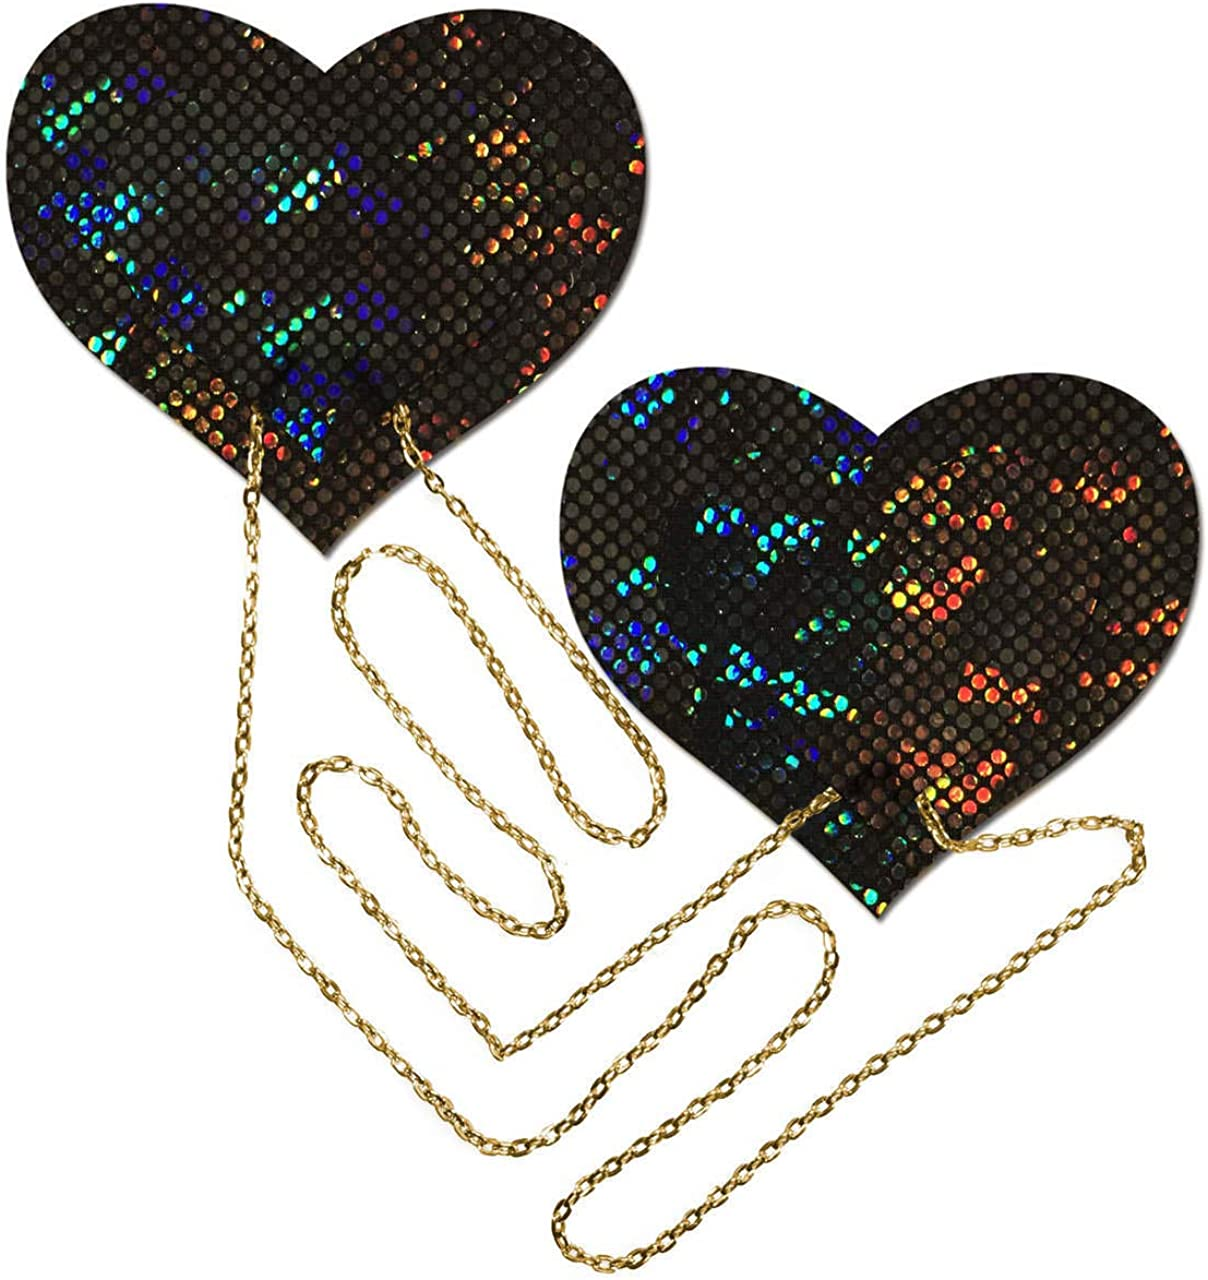 Pastease Nipple Pasties - Black Shattered Disco Ball Heart with